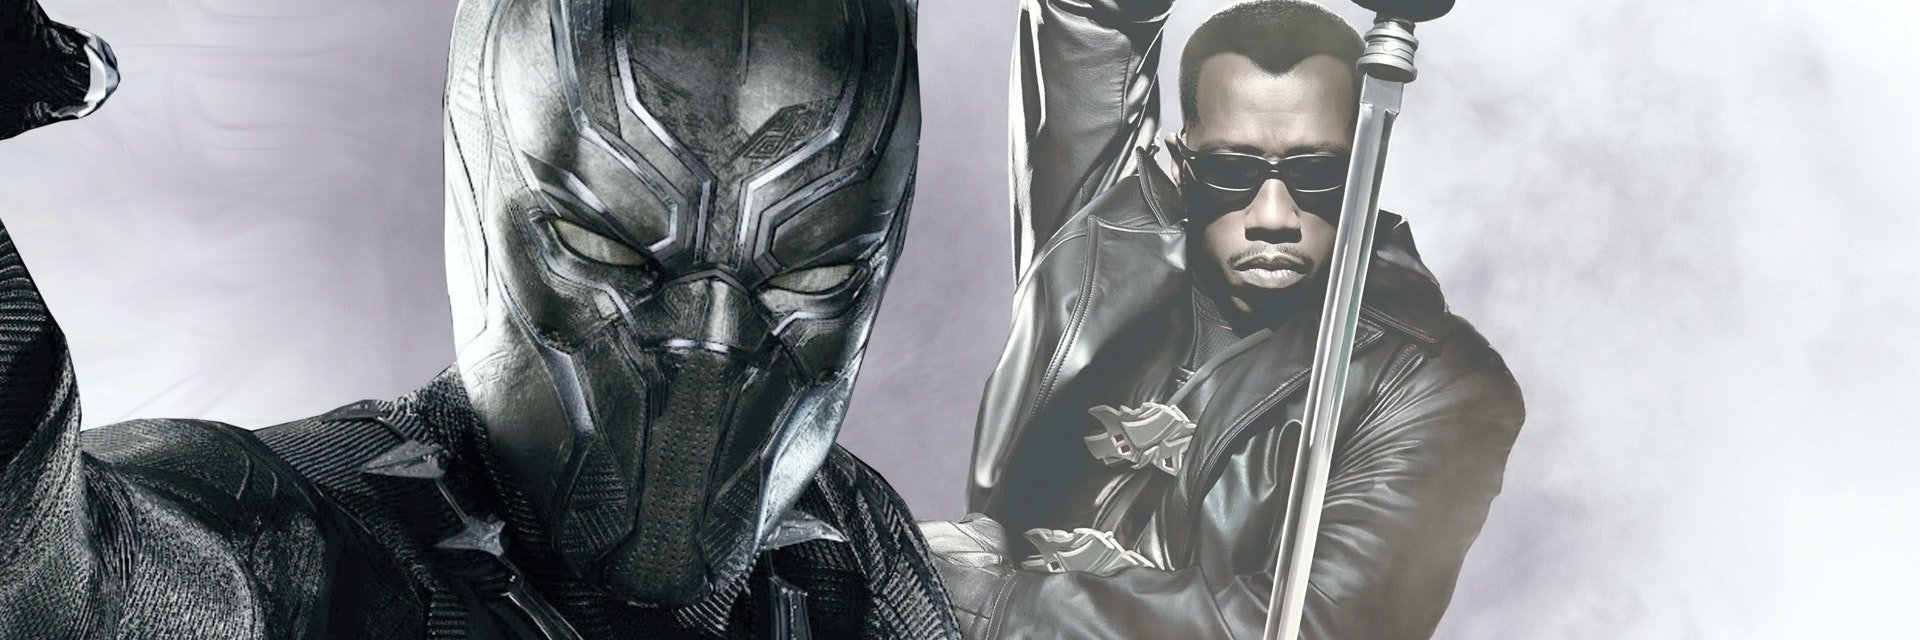 Image result for black panther blade movie